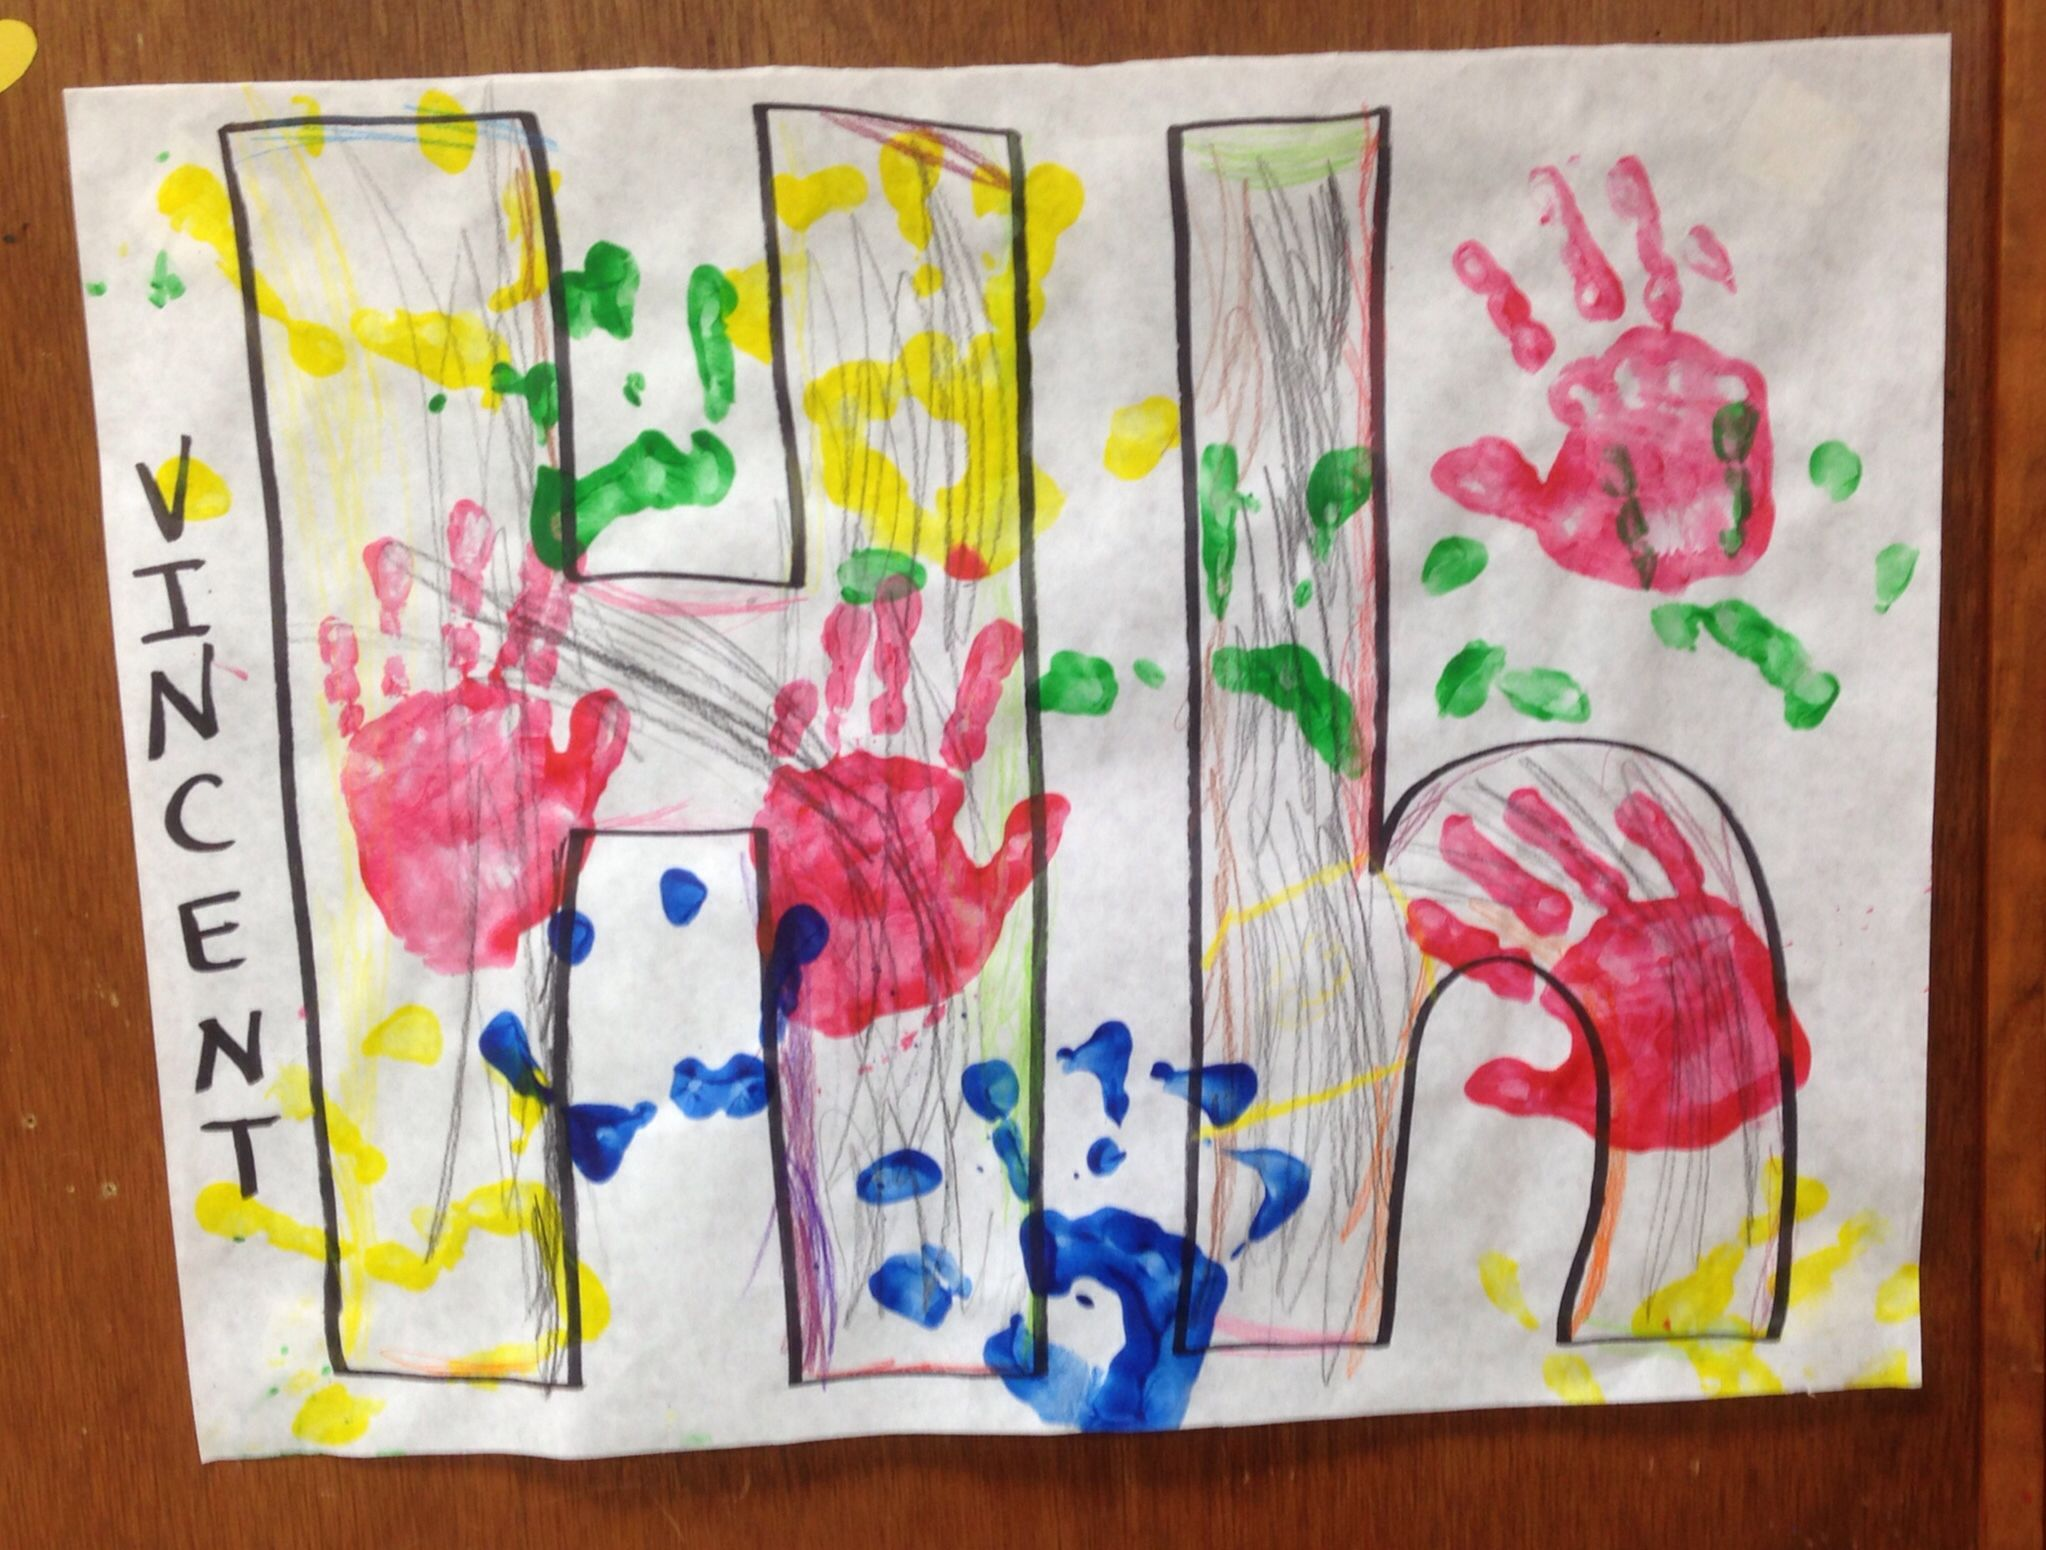 Hh Is For Hands Pre K Children Colored Their Letter H And